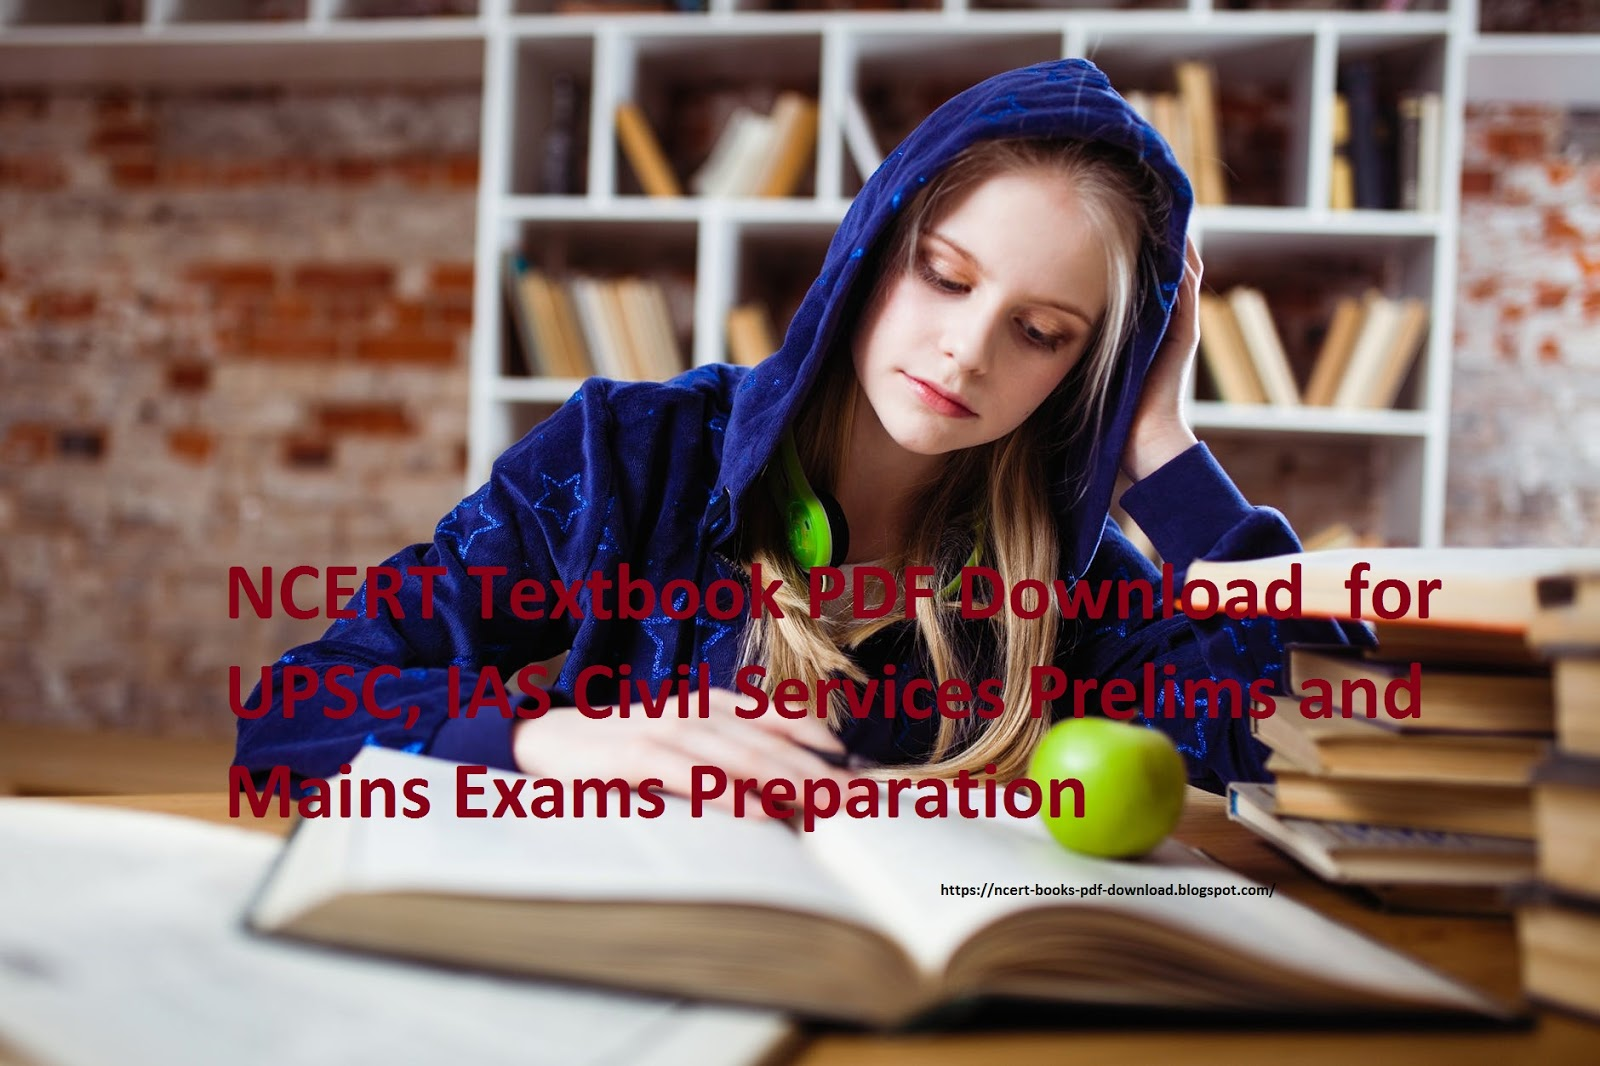 NCERT Textbook PDF Download  for UPSC, IAS Civil Services Prelims and Mains Exams Preparation